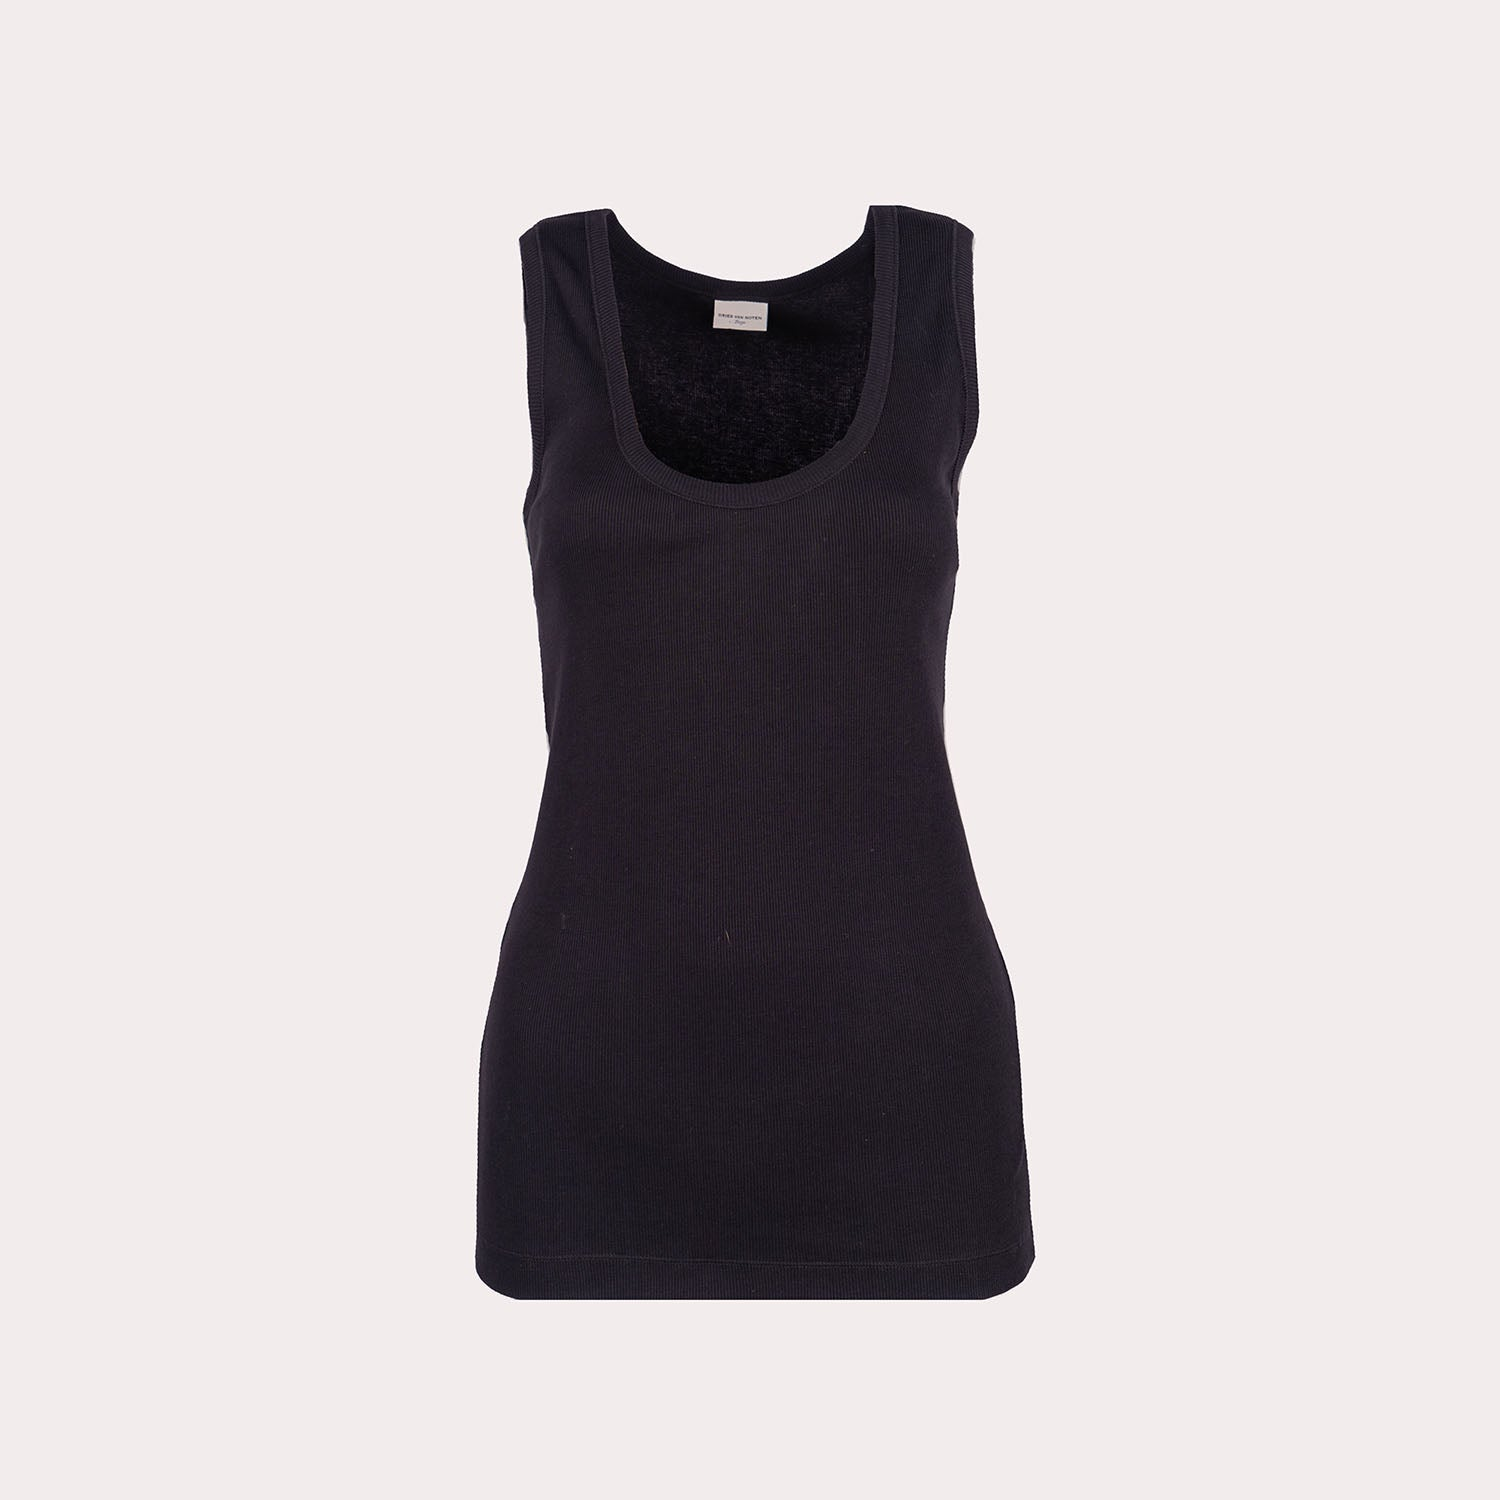 Sleeveless Form-Fitting Top